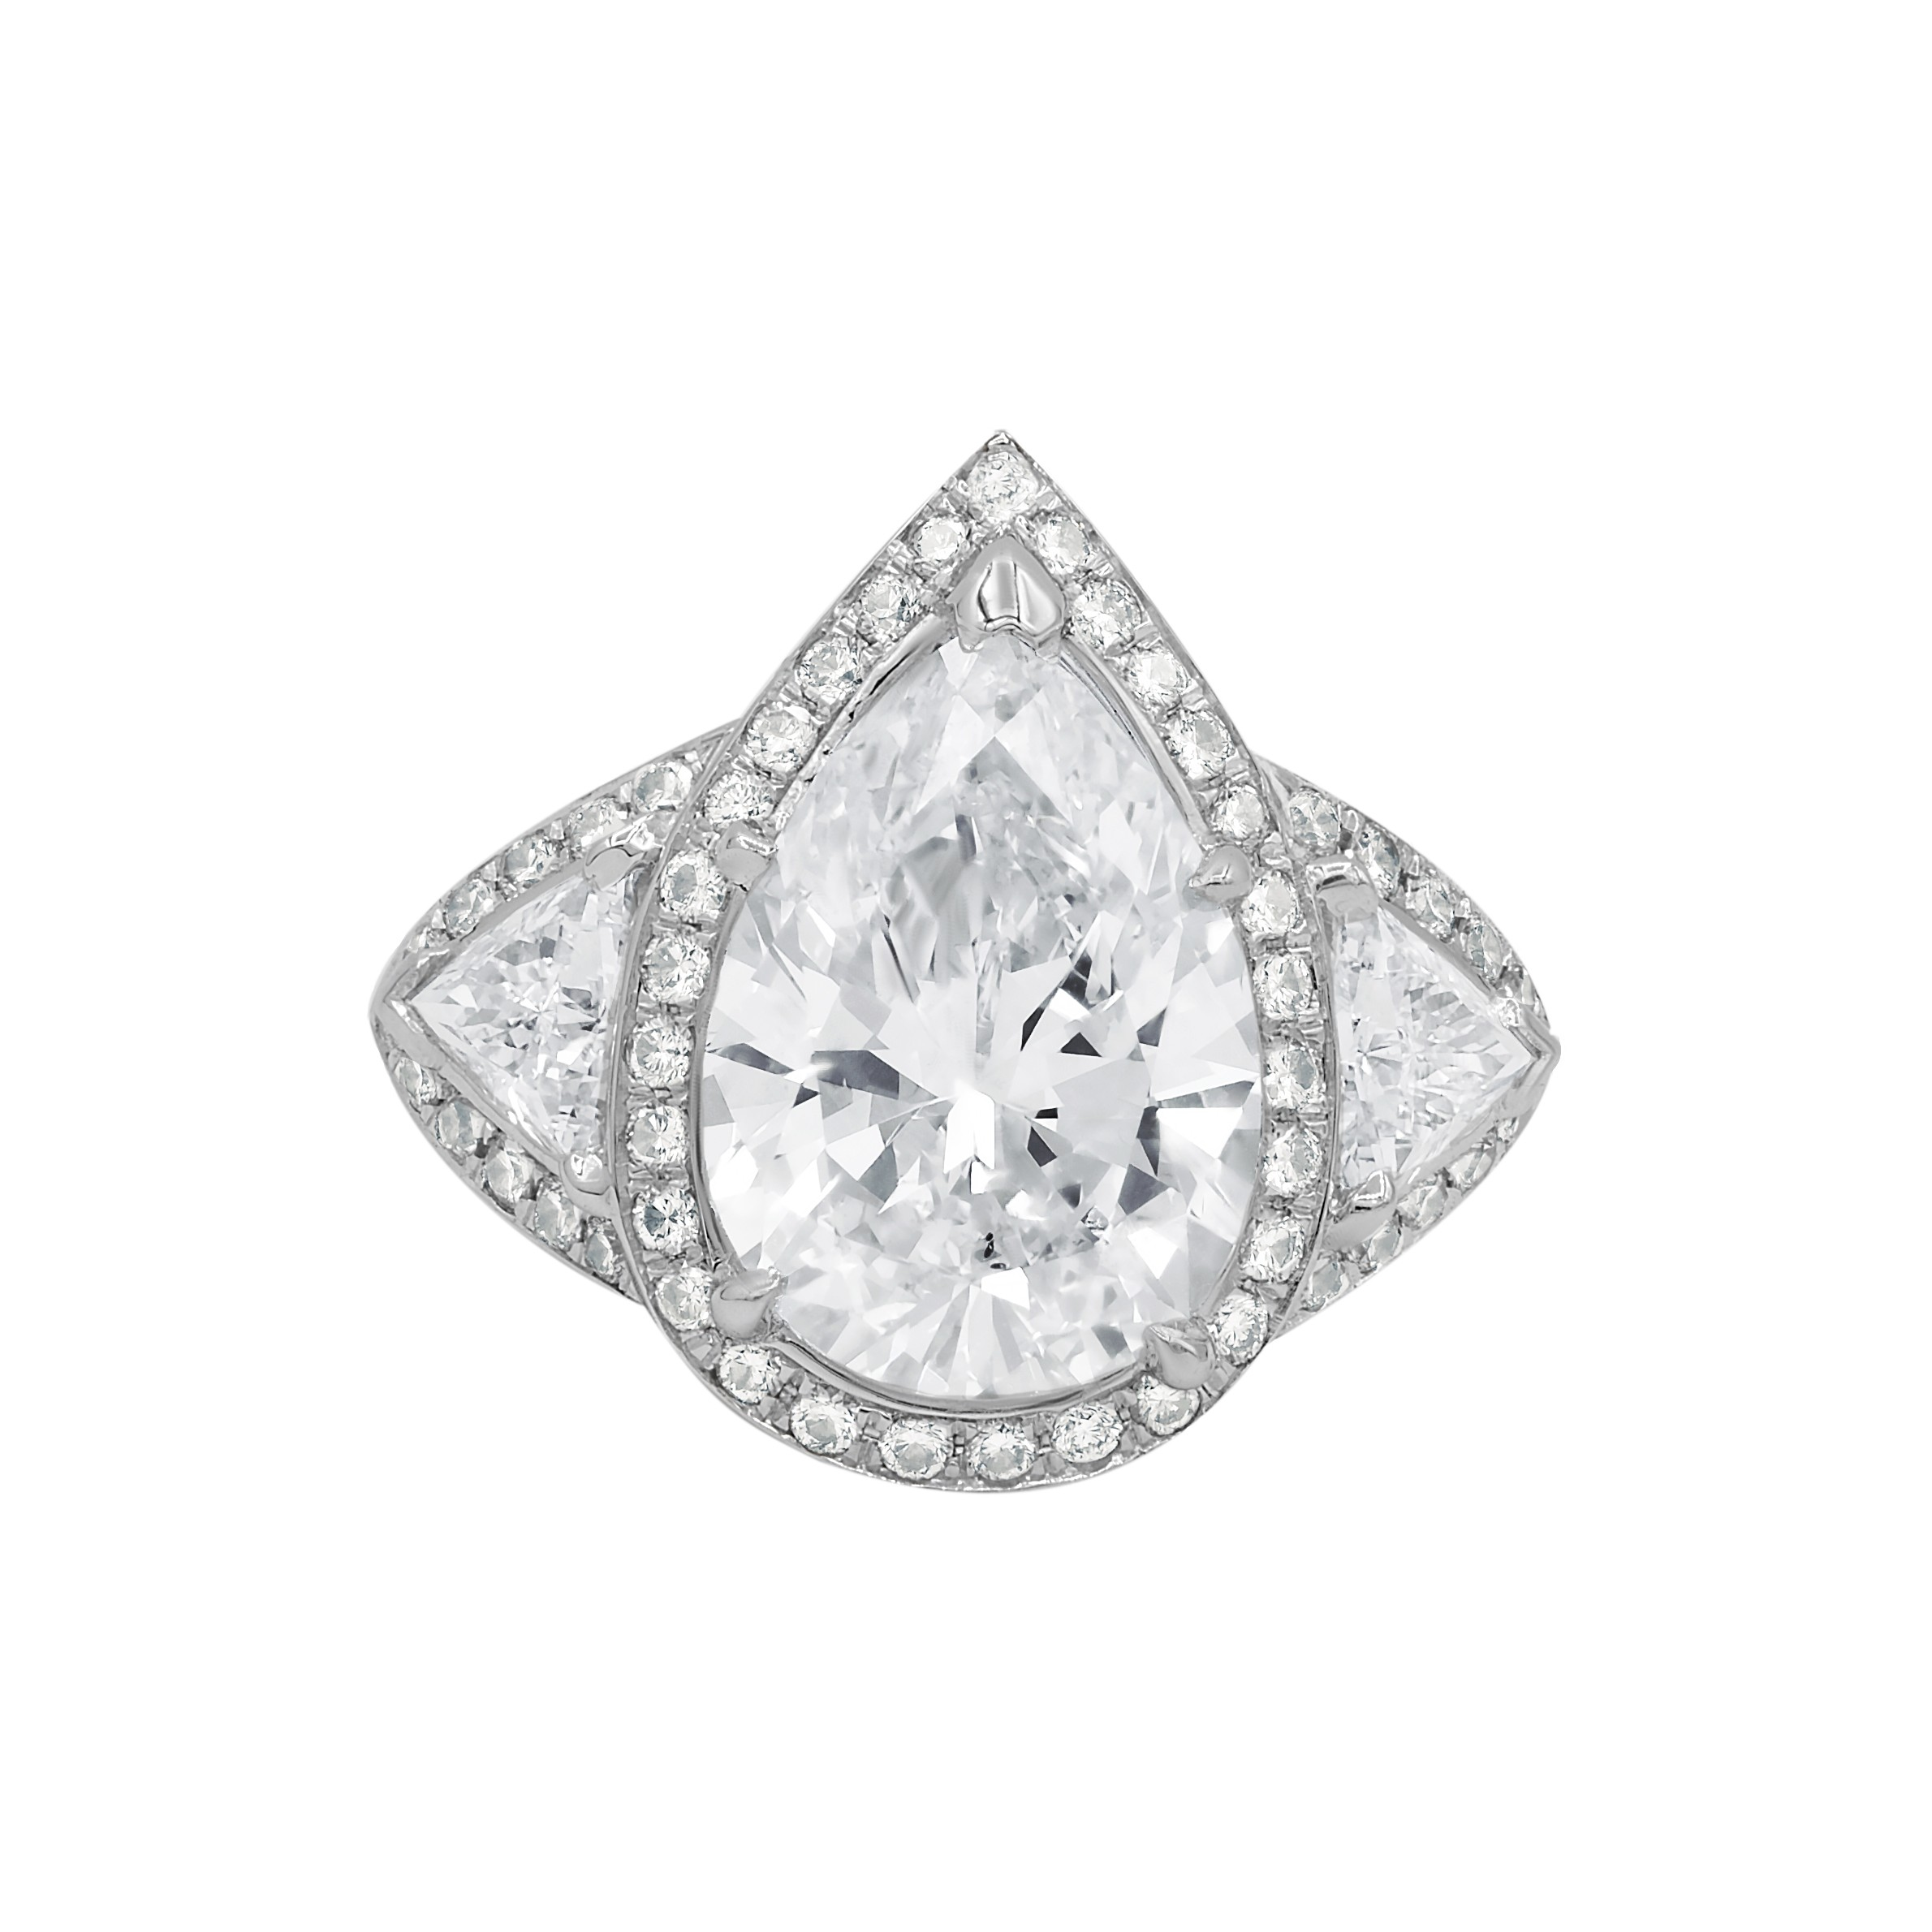 Bespoke GIA certified pear and trillion cut diamond ring